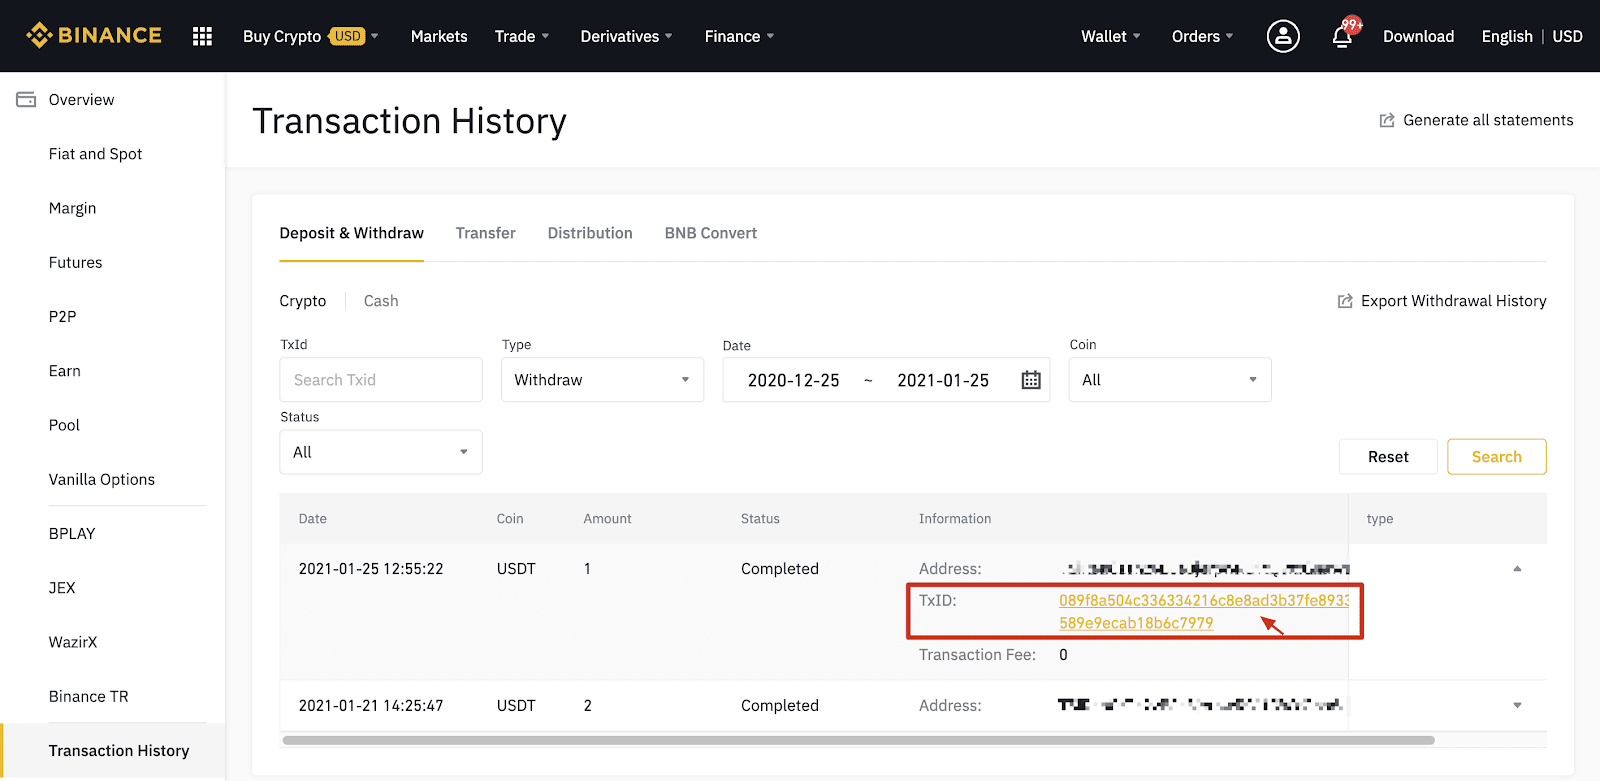 How to Withdraw and Make a Deposit in Binance